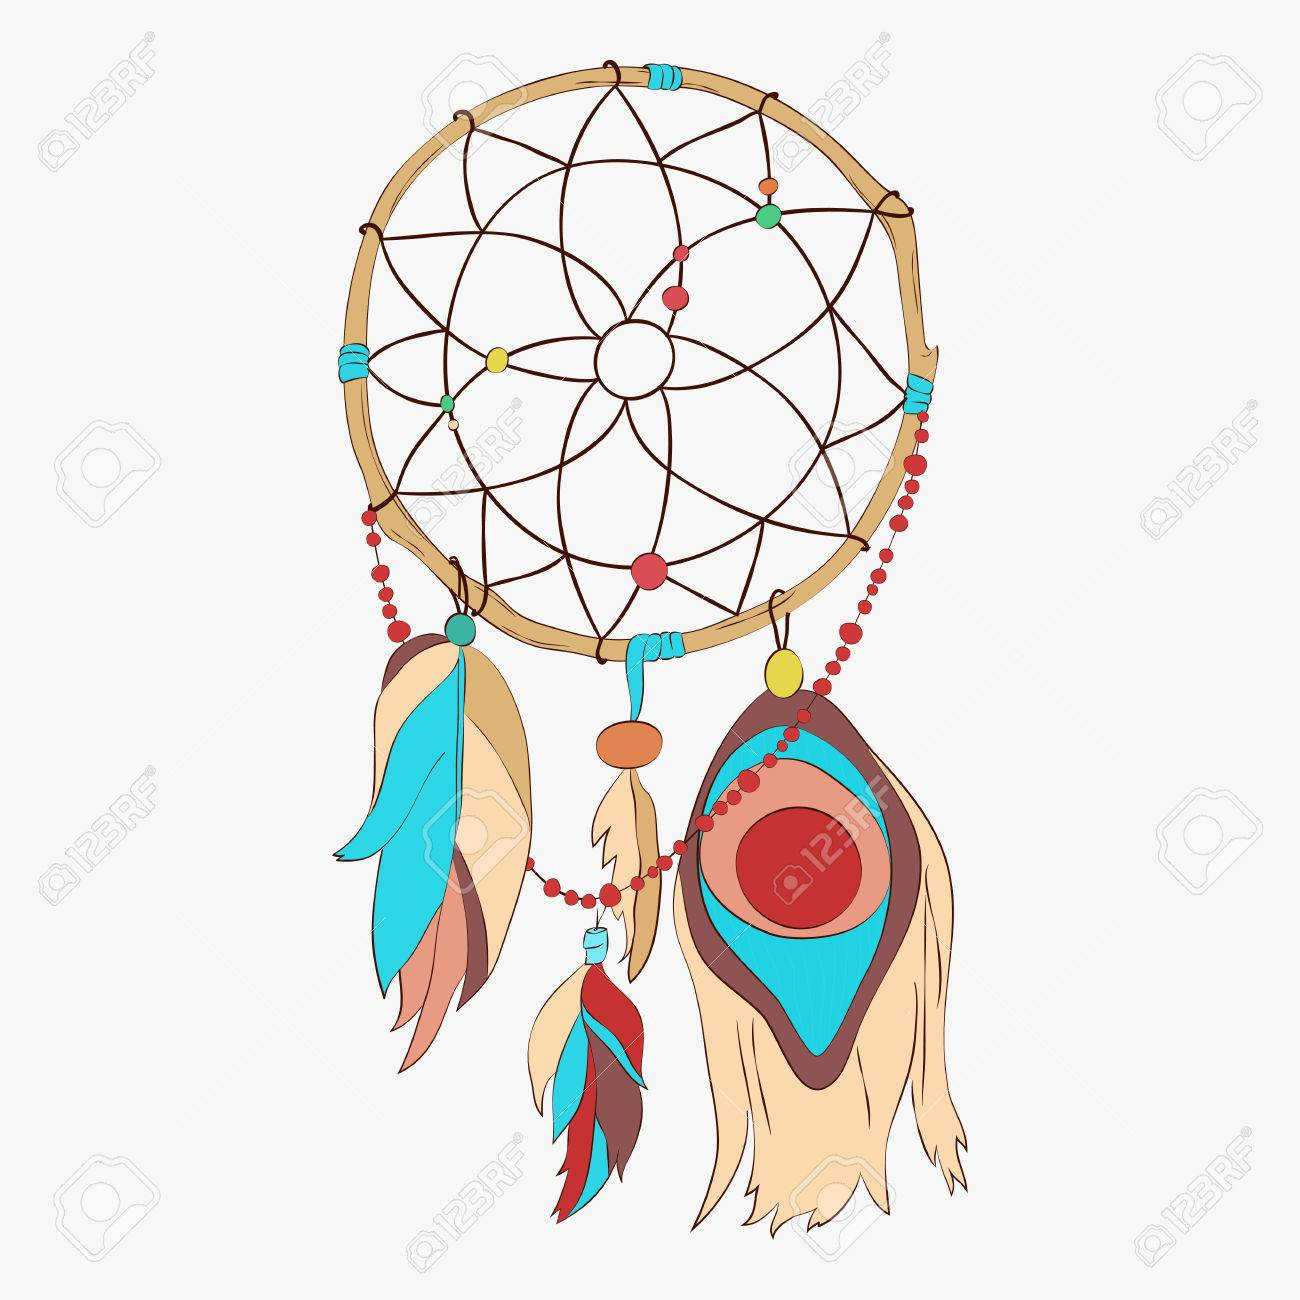 Magical dreamcatcher with sacred feathers to catch dreams pictogram icon abstract vector illustration. Dream catcher with indian vector feather. - 58703724